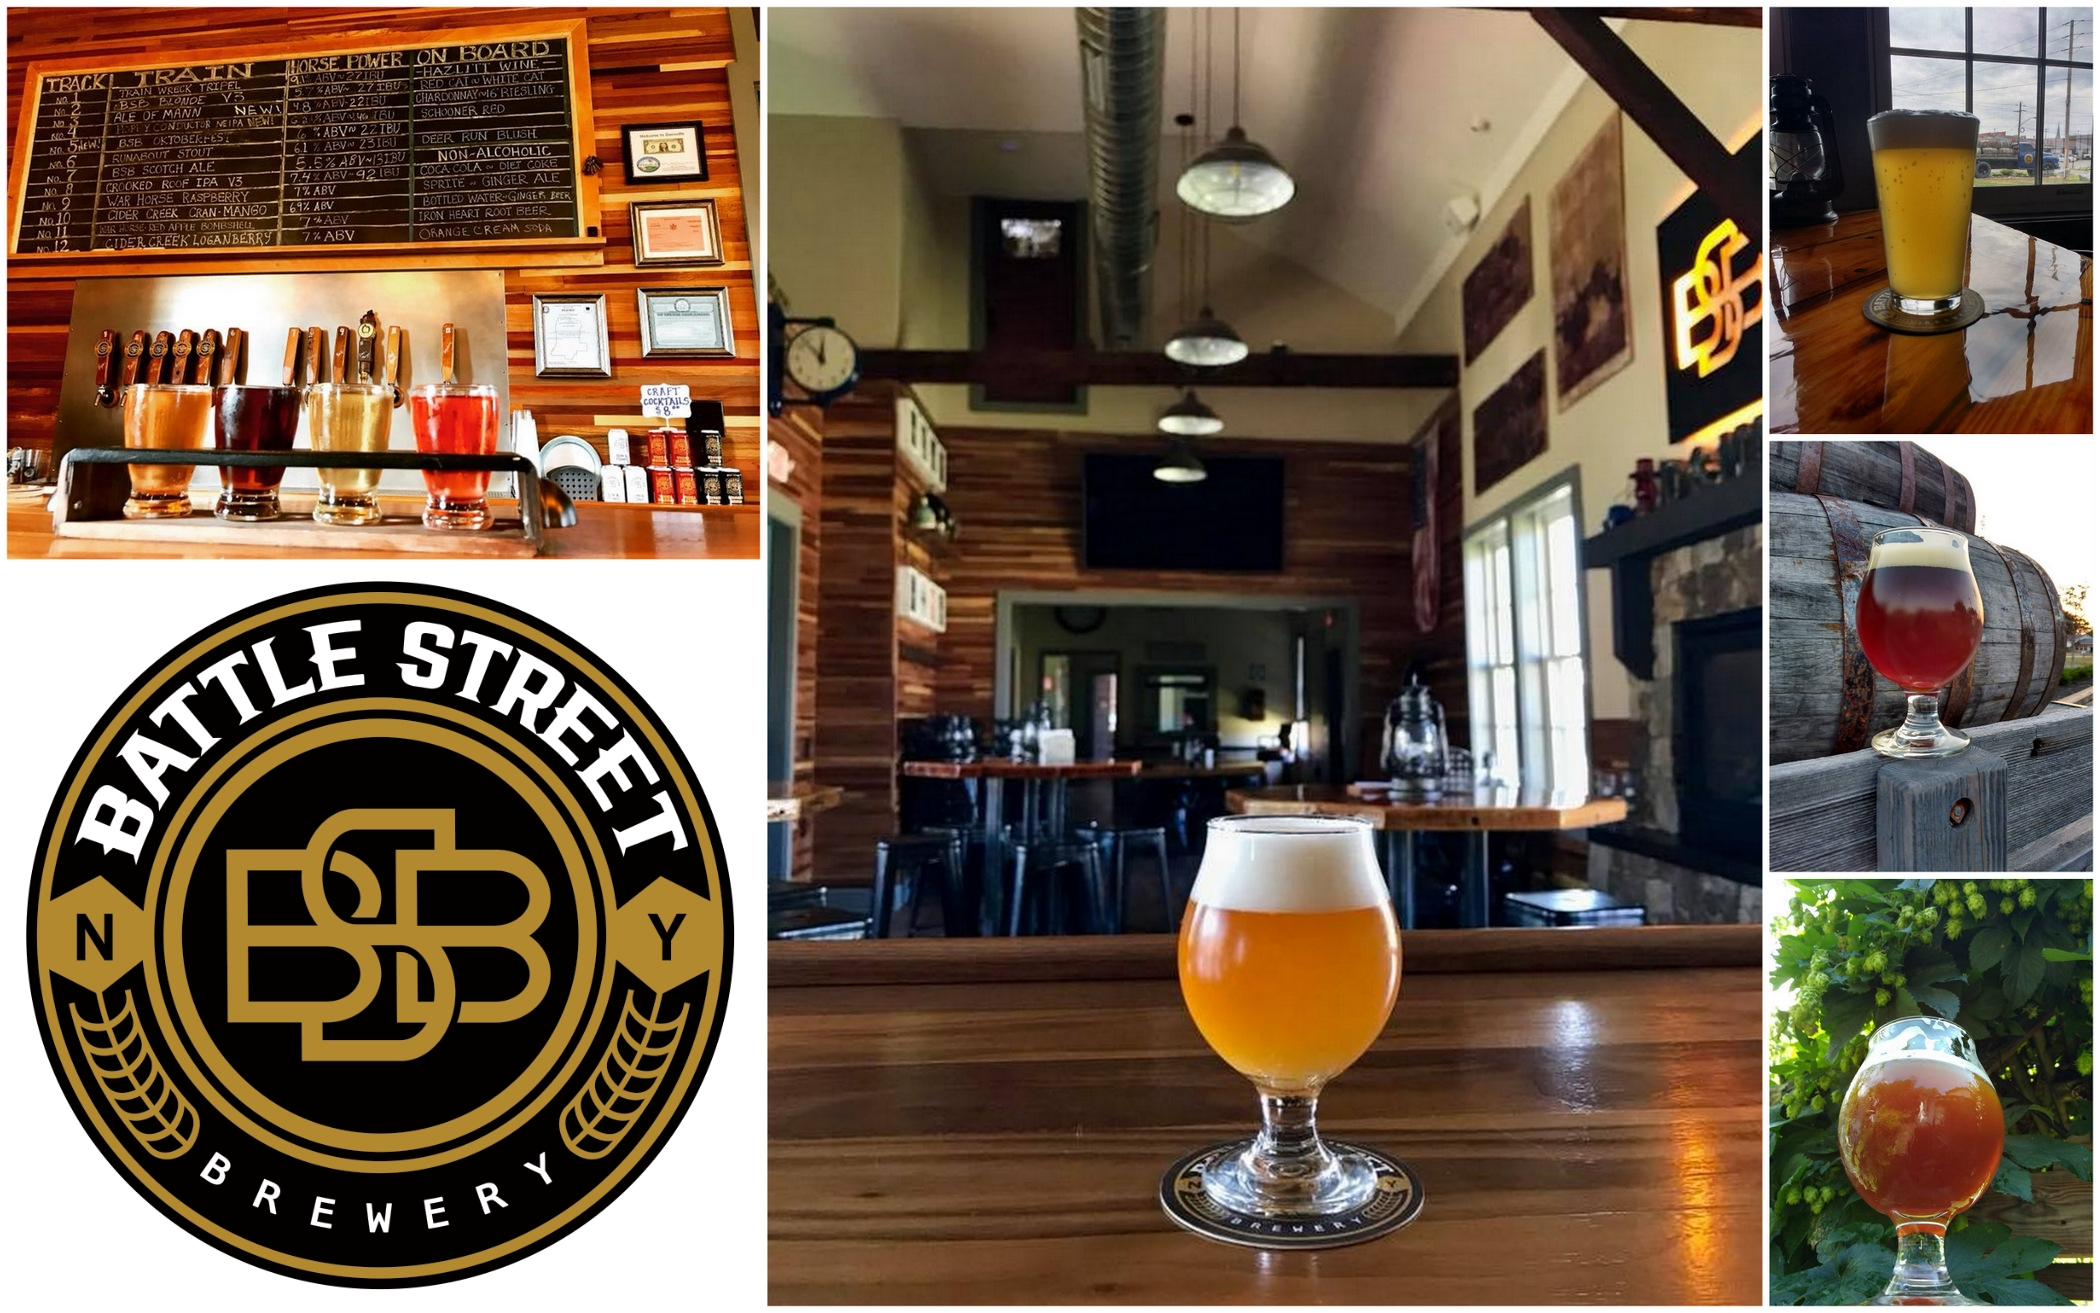 Battle Street Brewery, BSB, Dansville NY, Livingston County Chamber of Commerce & Tourism, Trip Planner, Happy Hour, Craft Beer, Libation Loop